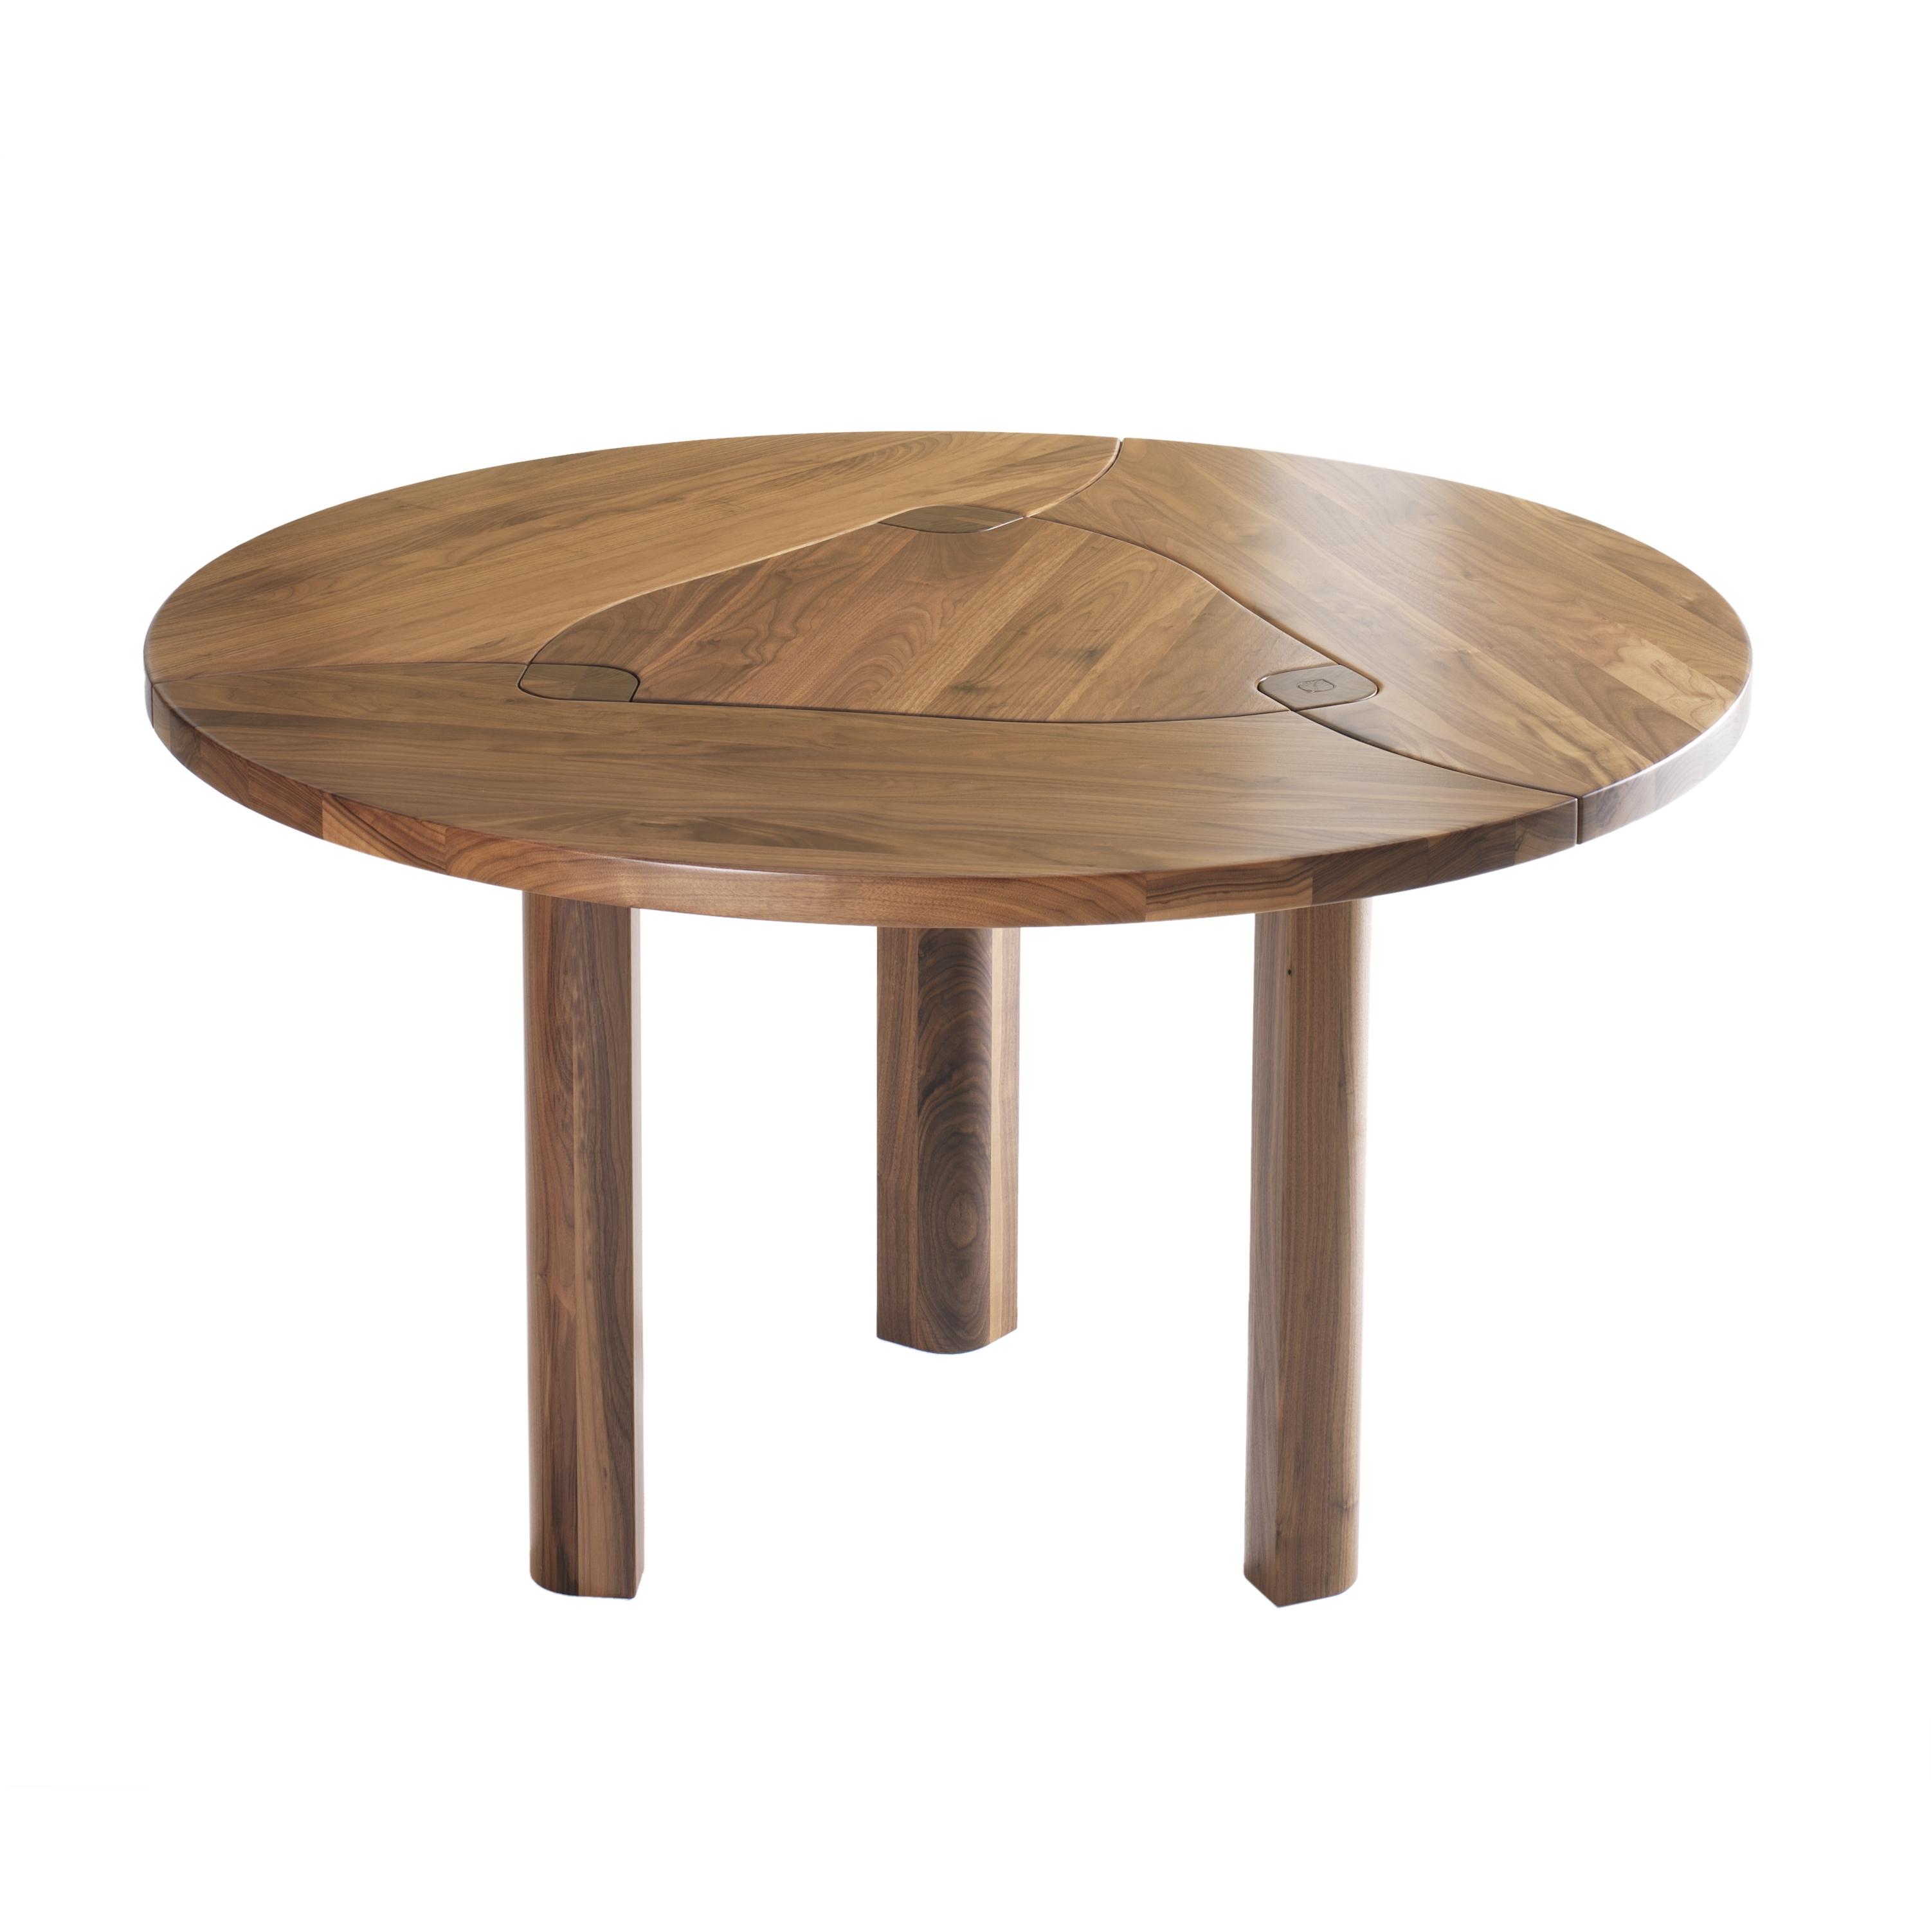 Acrylic Round Dining Tables Pertaining To Current Round Brown Wooden Dining Table Having Three Cylinder Brown Wooden (View 16 of 25)